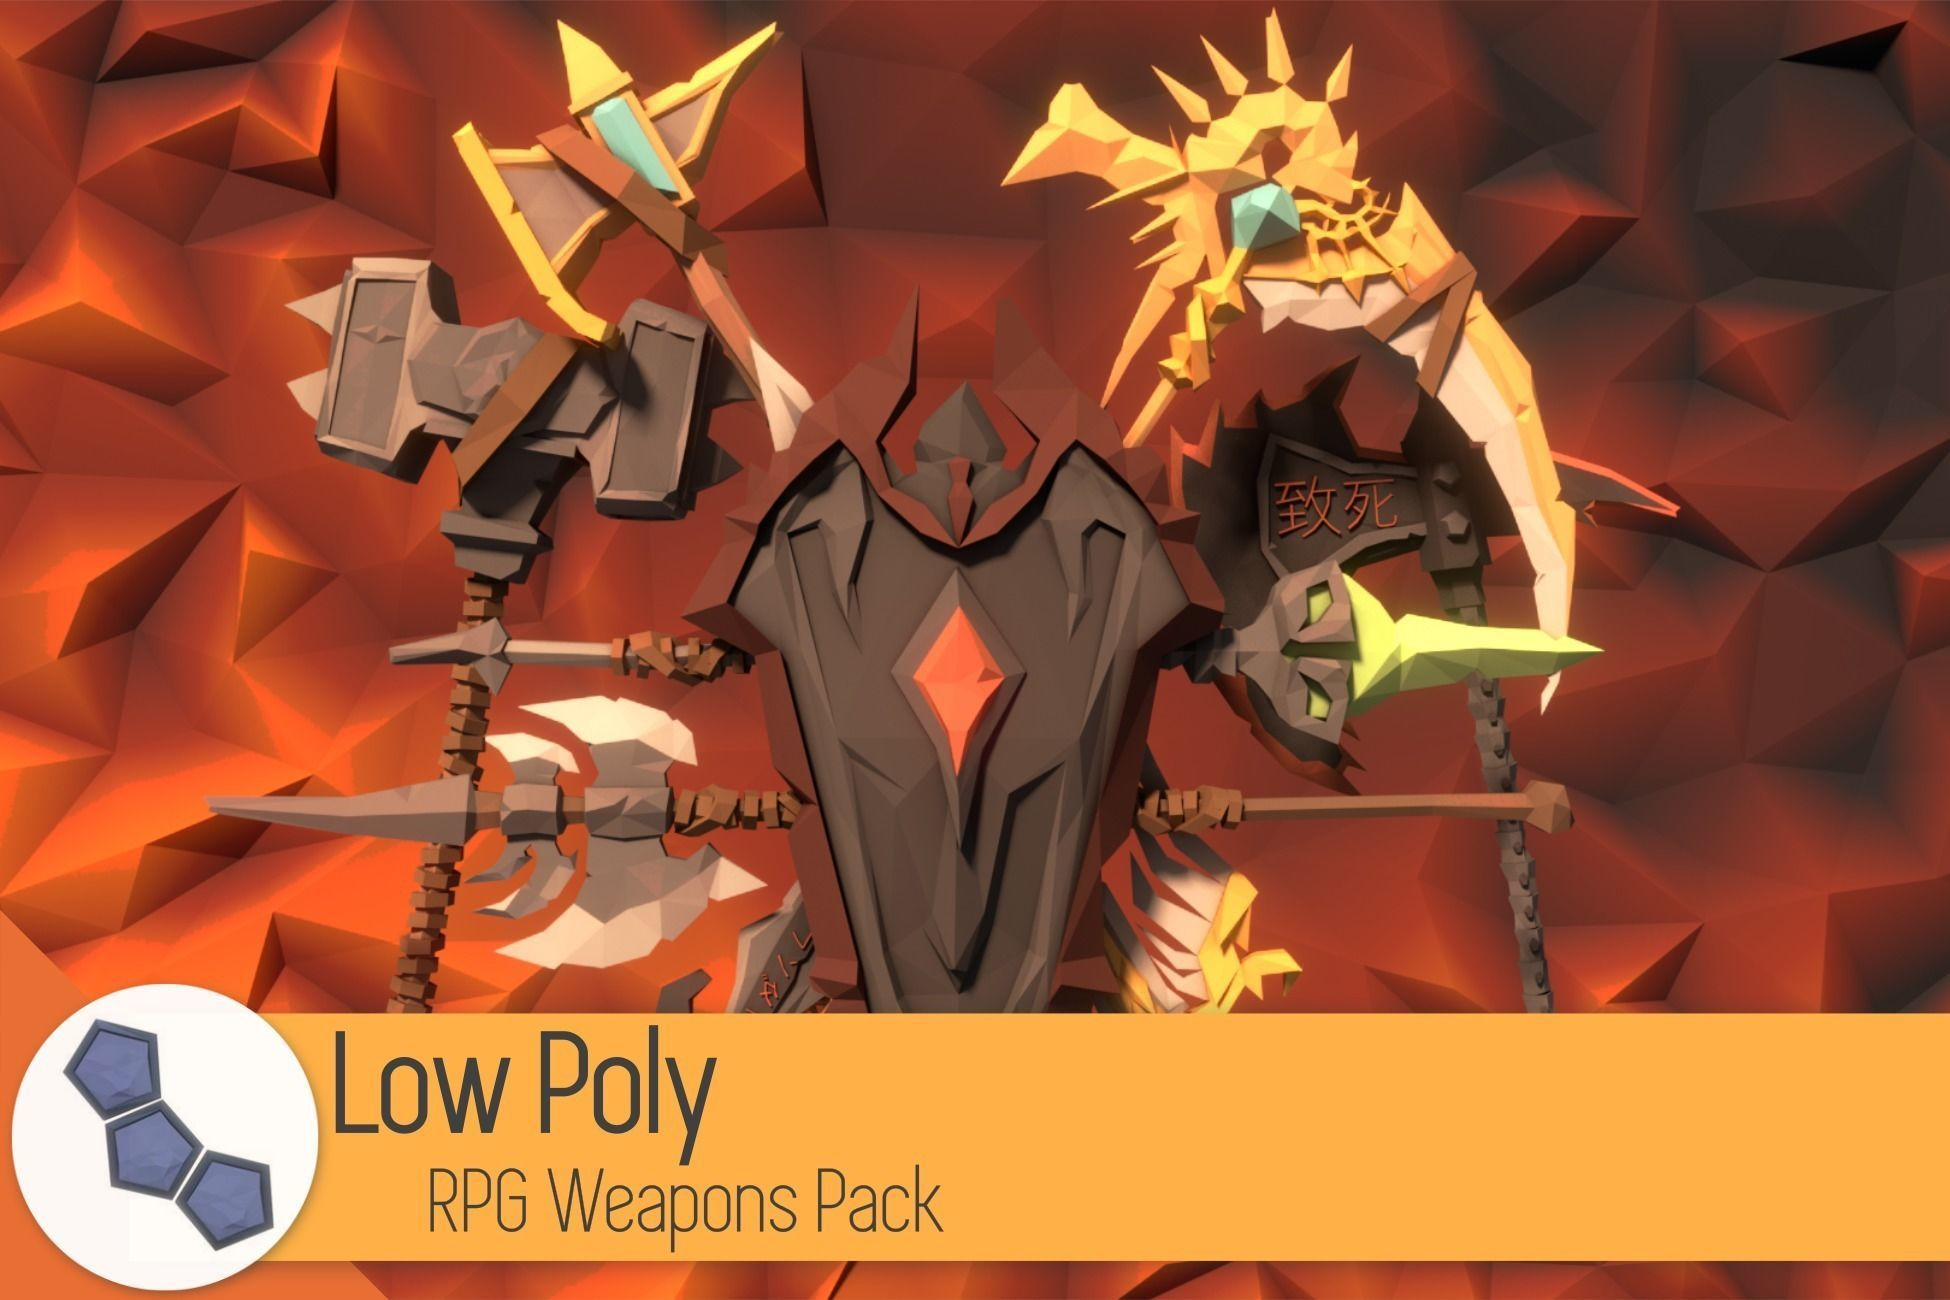 Low Poly RPG Weapons Pack